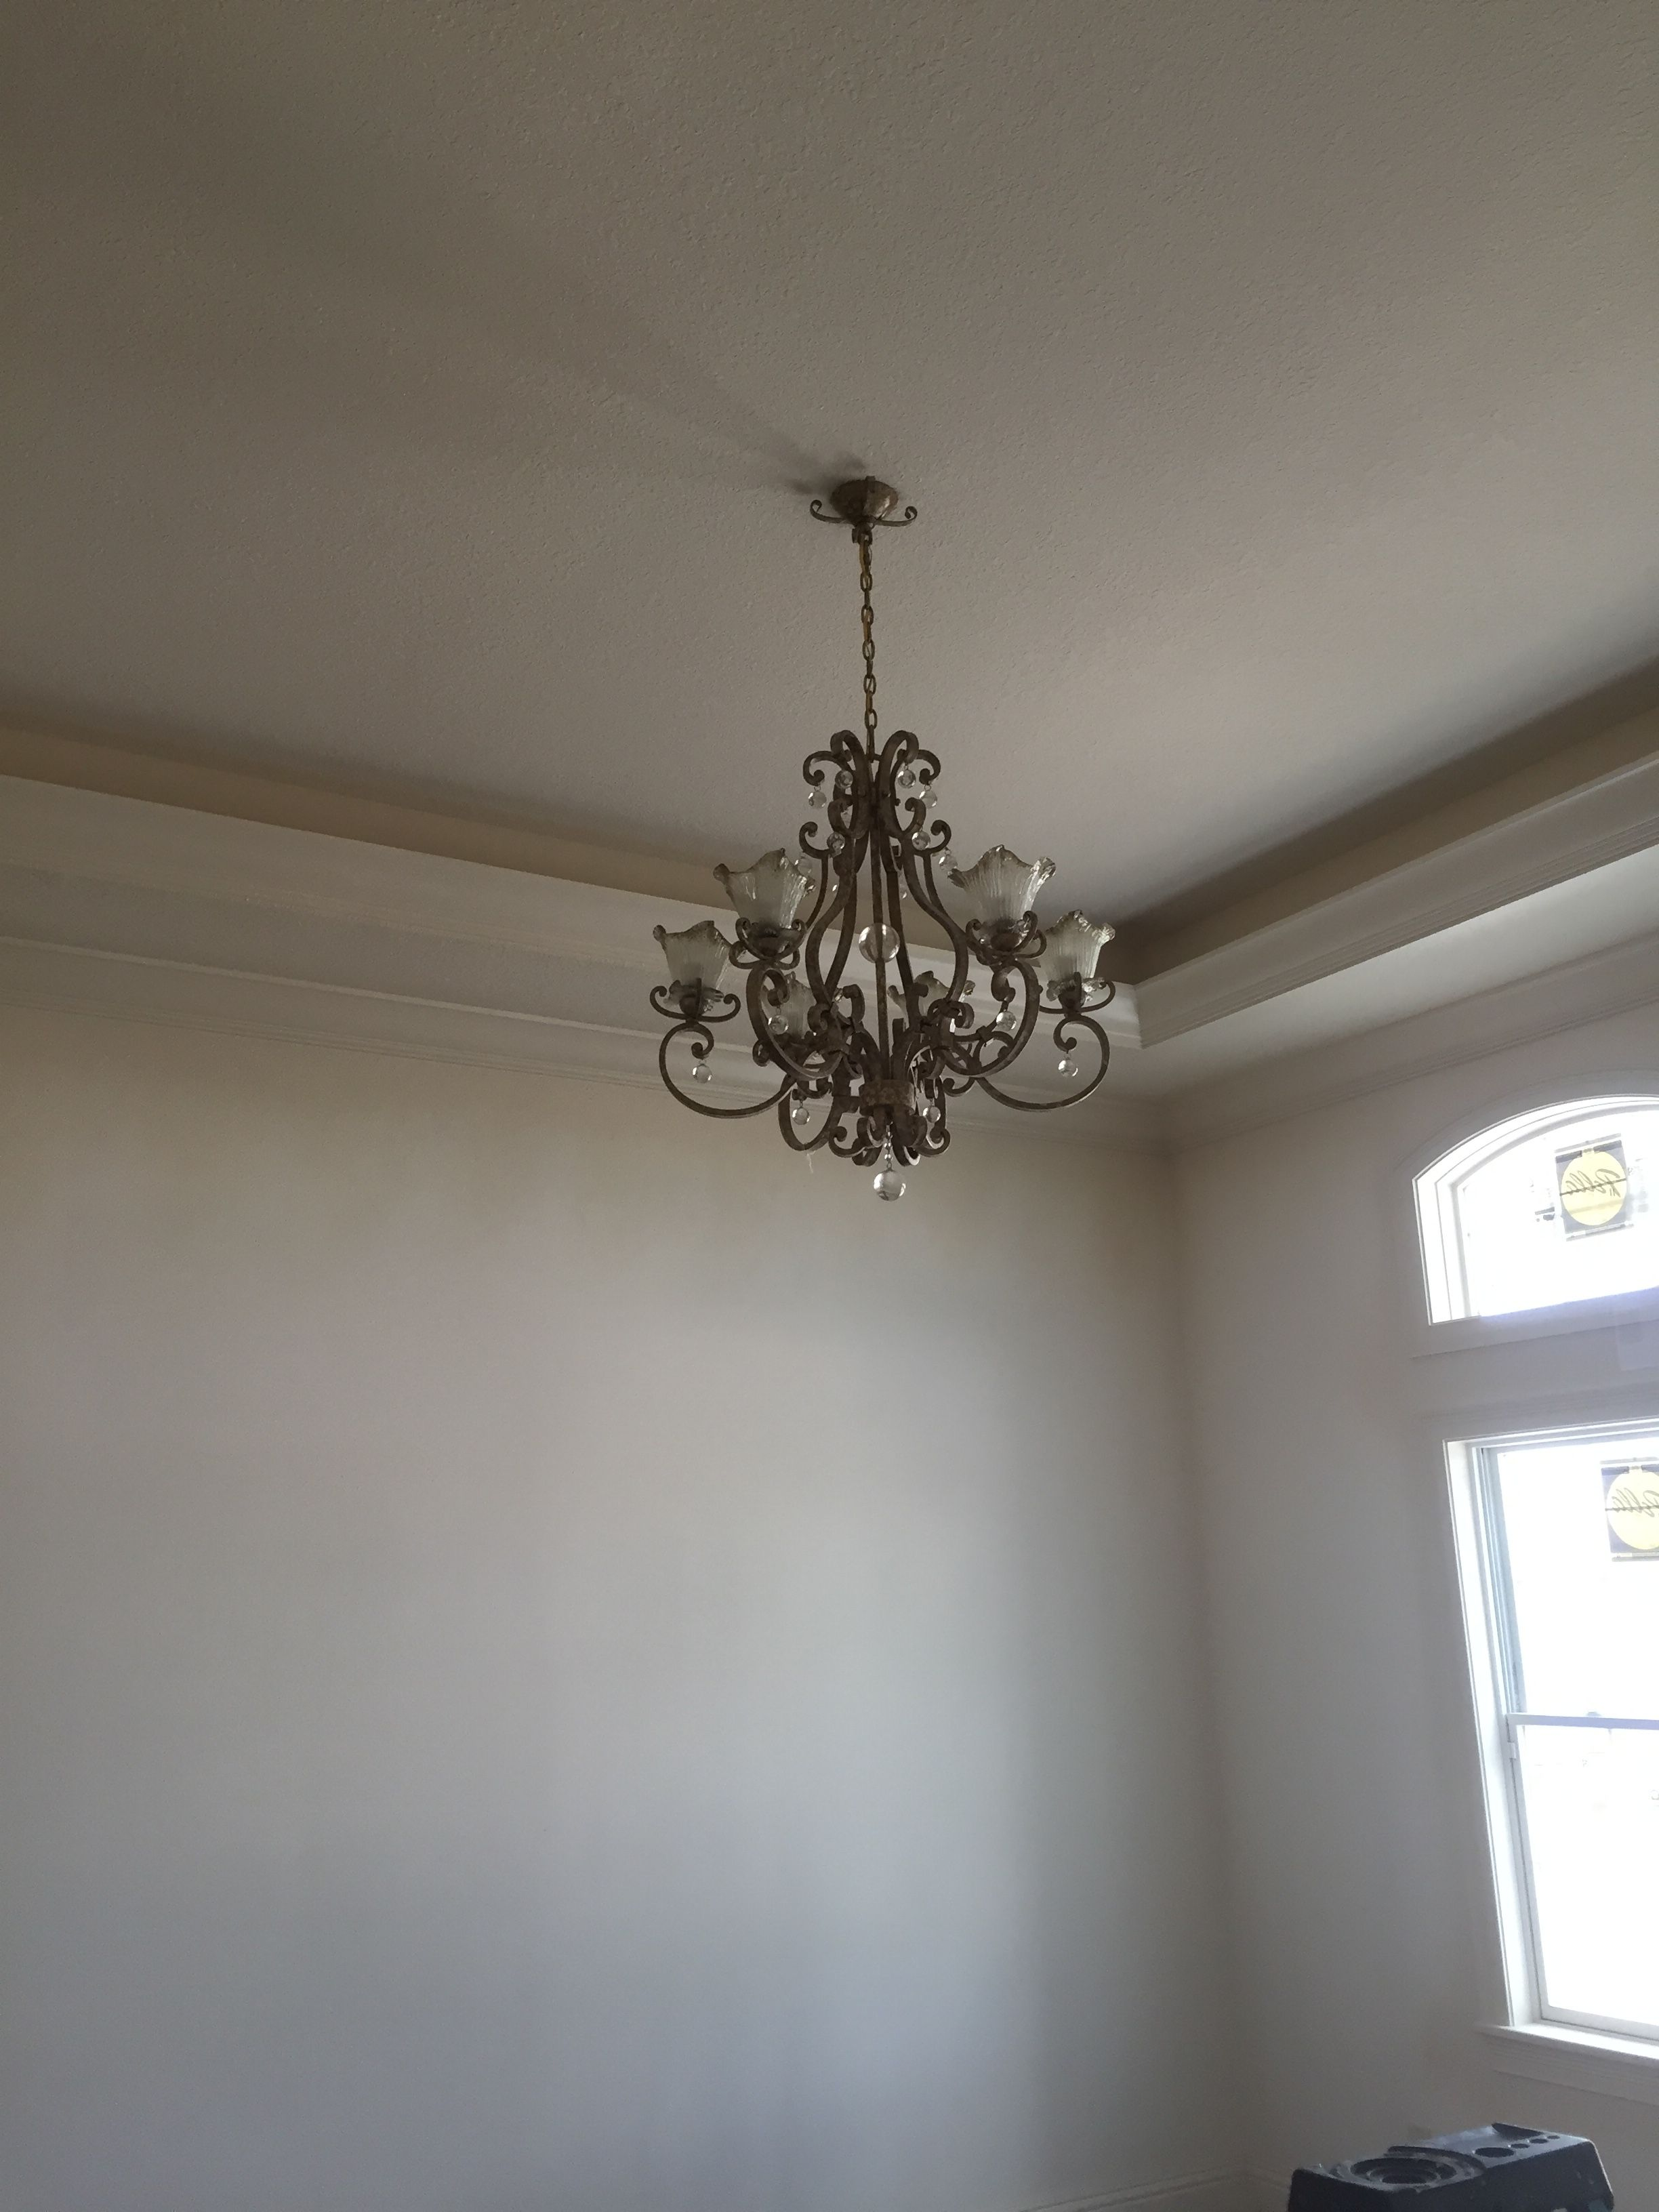 quality pin ceiling medallion rose white gypsum plastic center panel room colour high chandelier